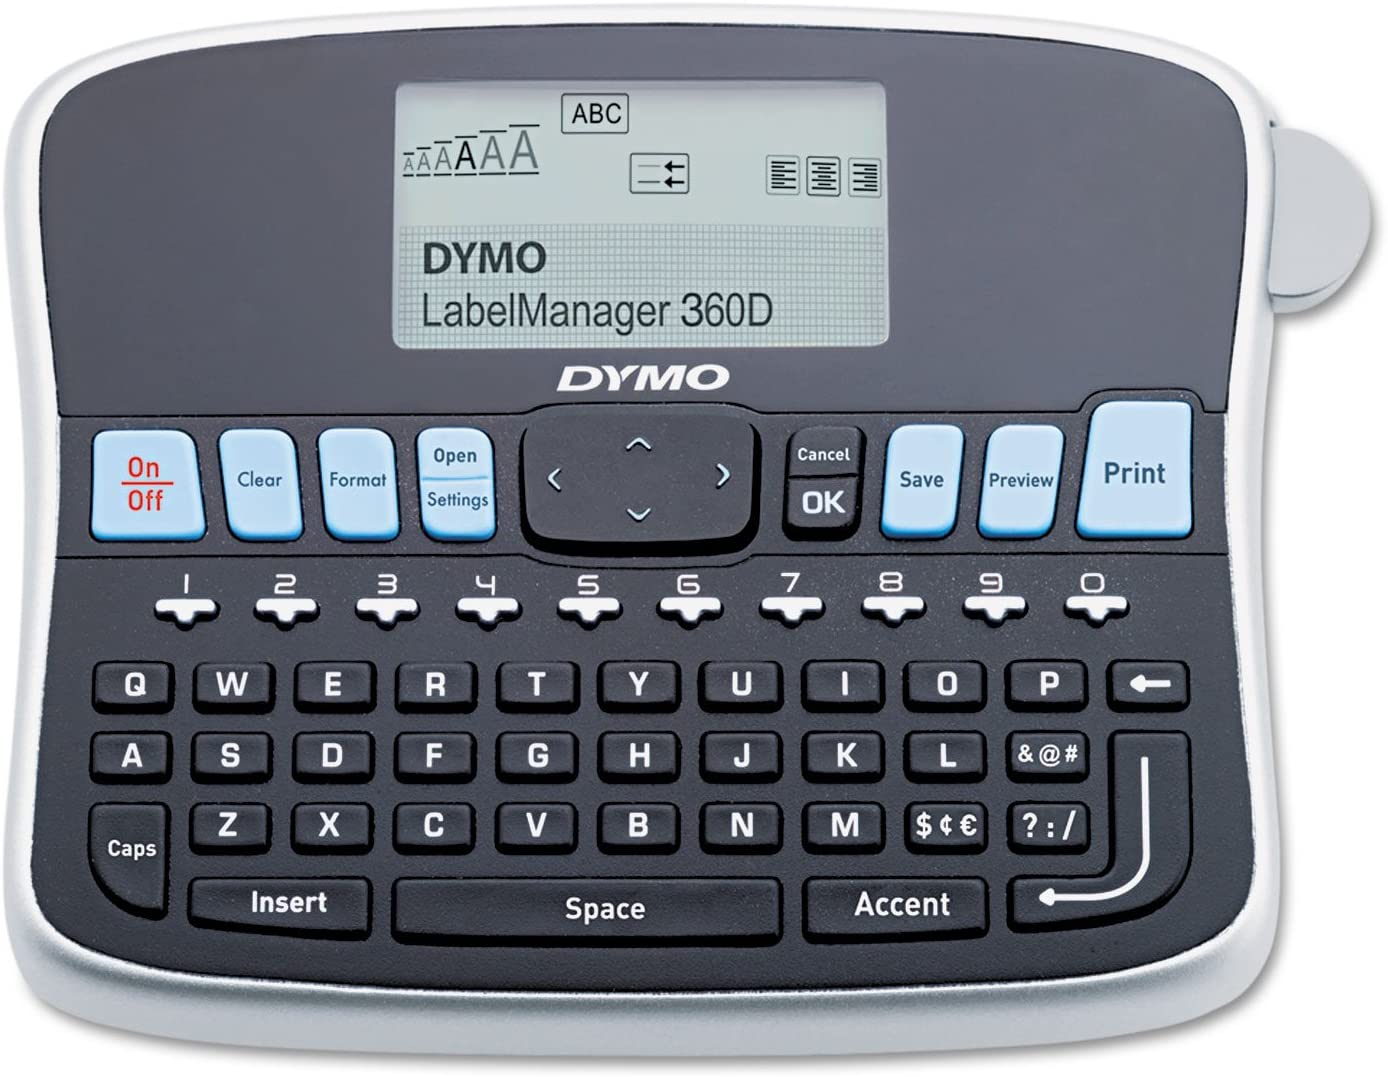 DYM1754488 - Dymo Limited price LabelManager latest Maker LM360D Label